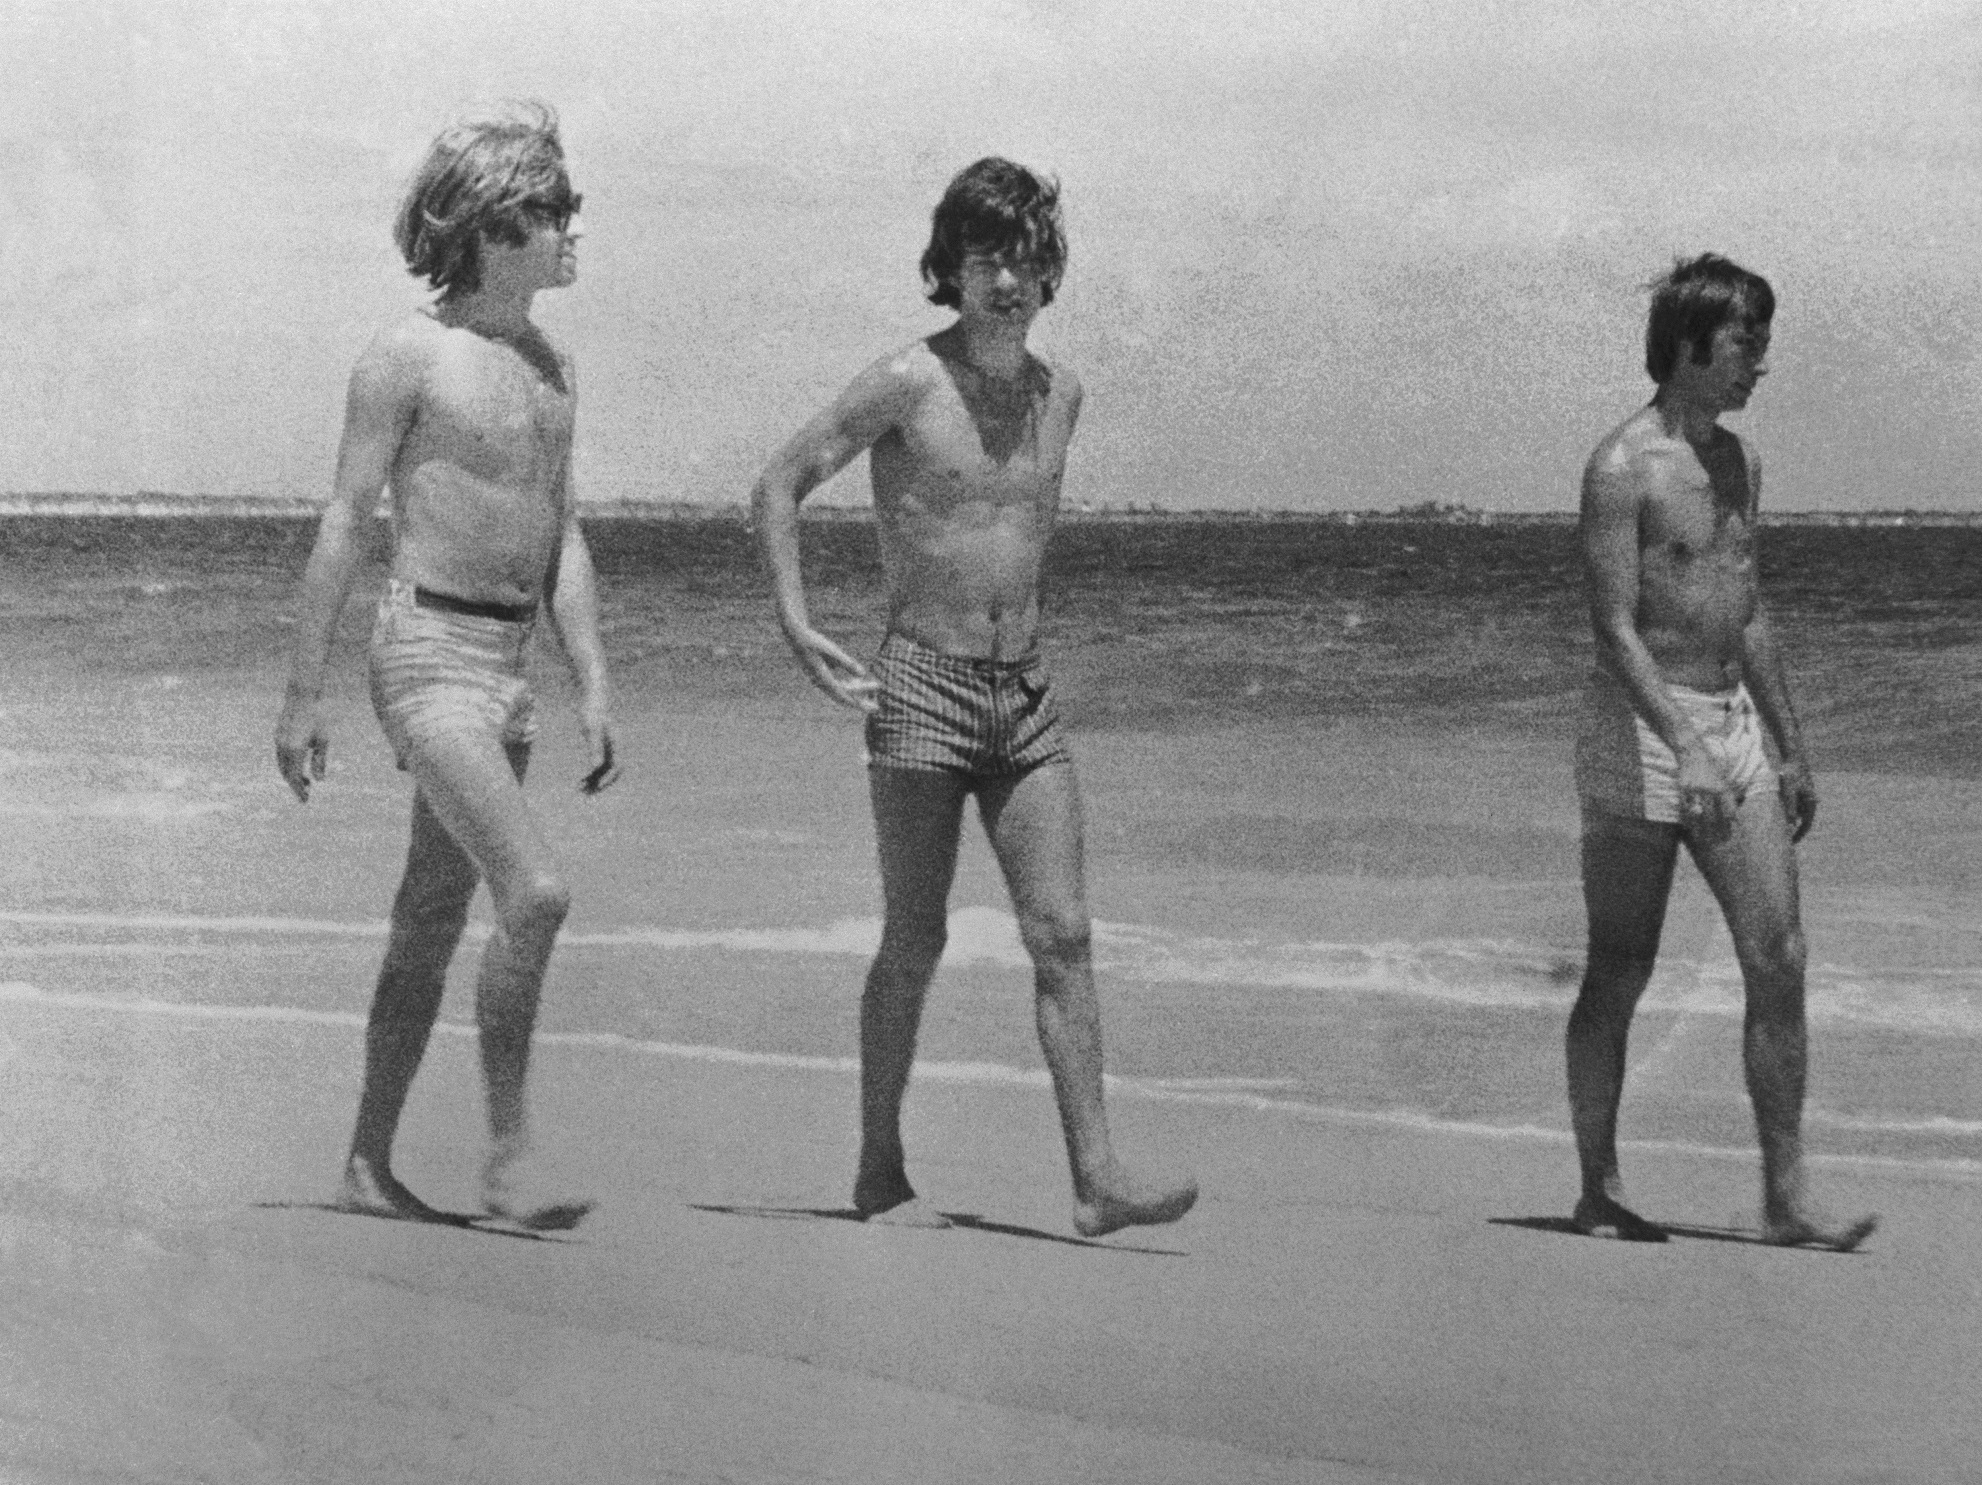 Rolling Stones Brian Jones, Mick Jagger and Charlie Watts on the beach in Australia, 1965